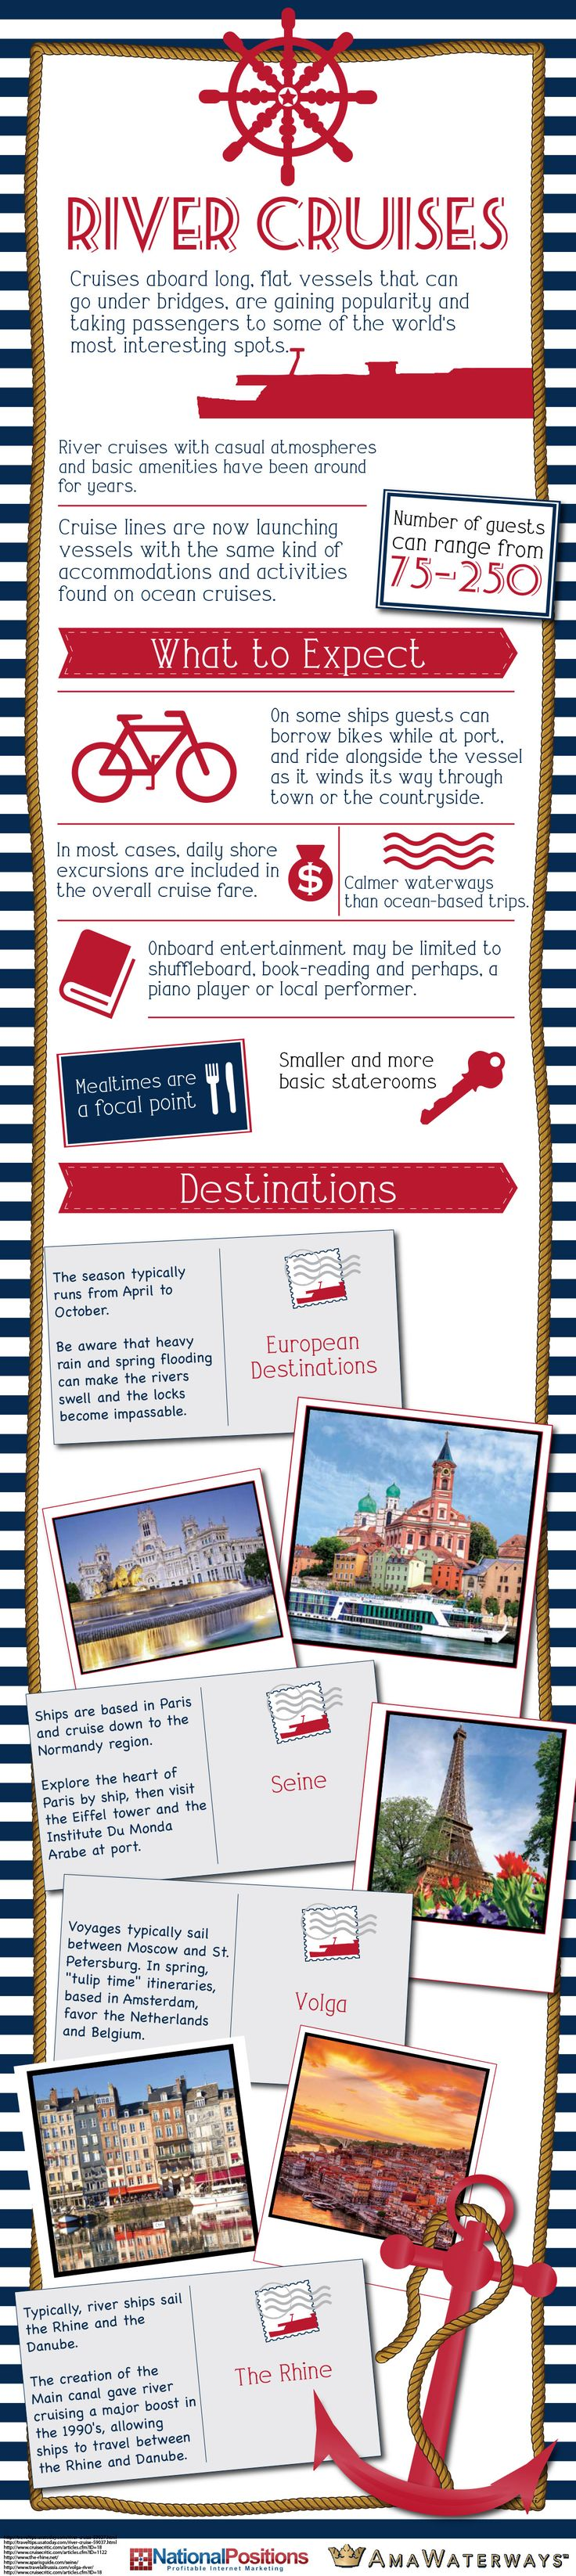 Take a look at the following infographic at http://tripoutlook.com to learn more about what river cruises have to offer.